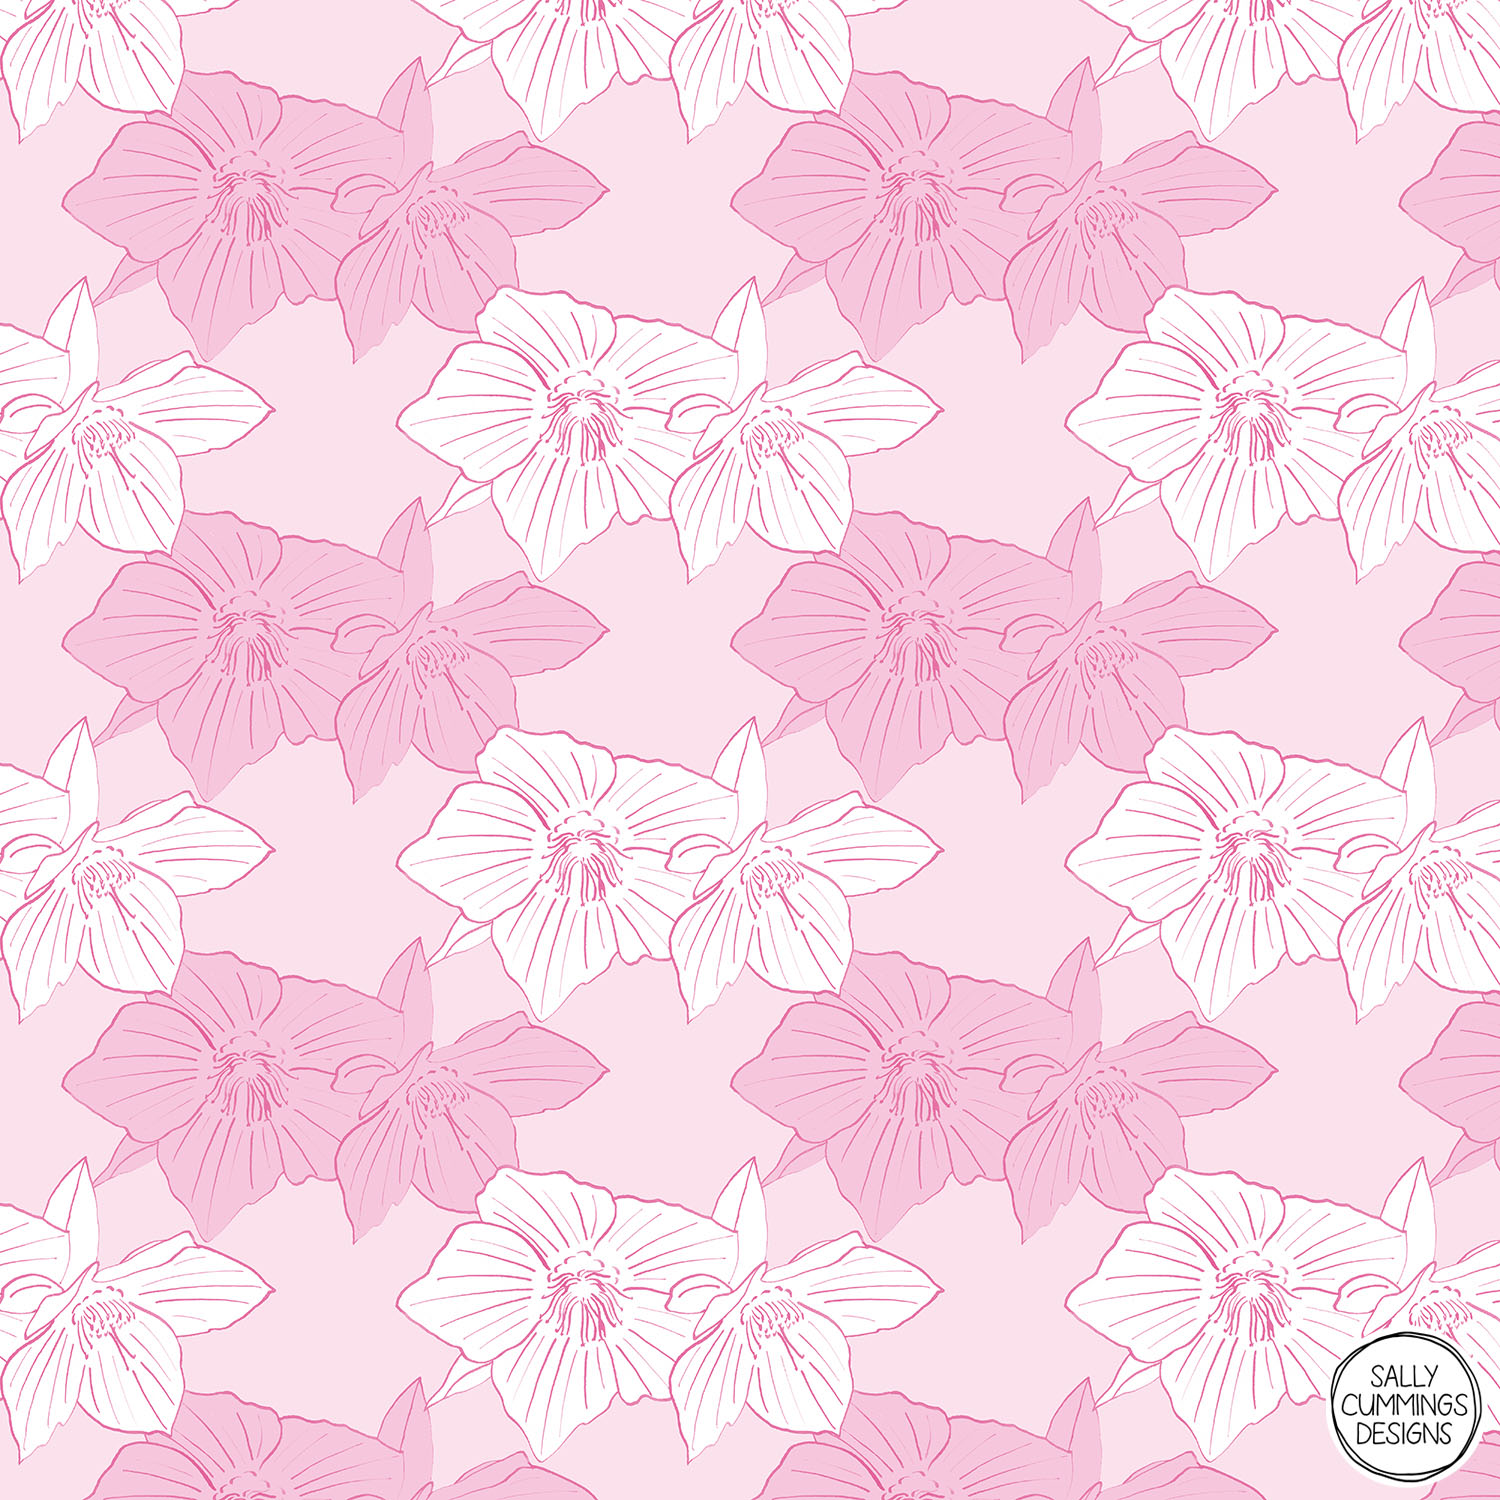 Sally Cummings Designs - Pink Hellebores Pattern